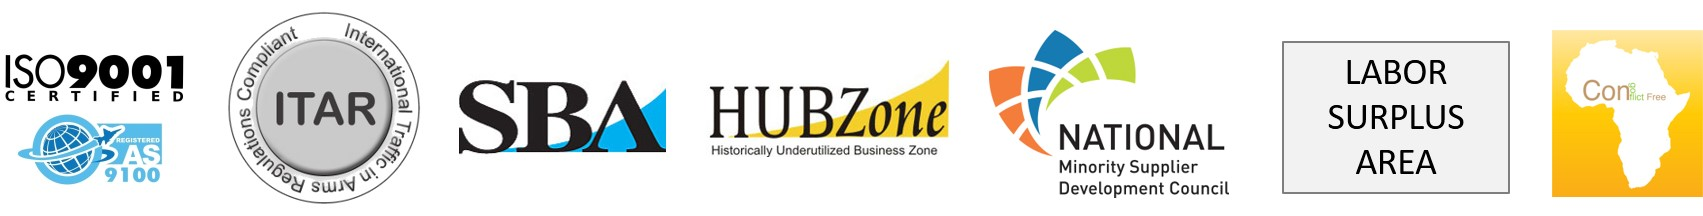 ISO9001-Certified-HubZone